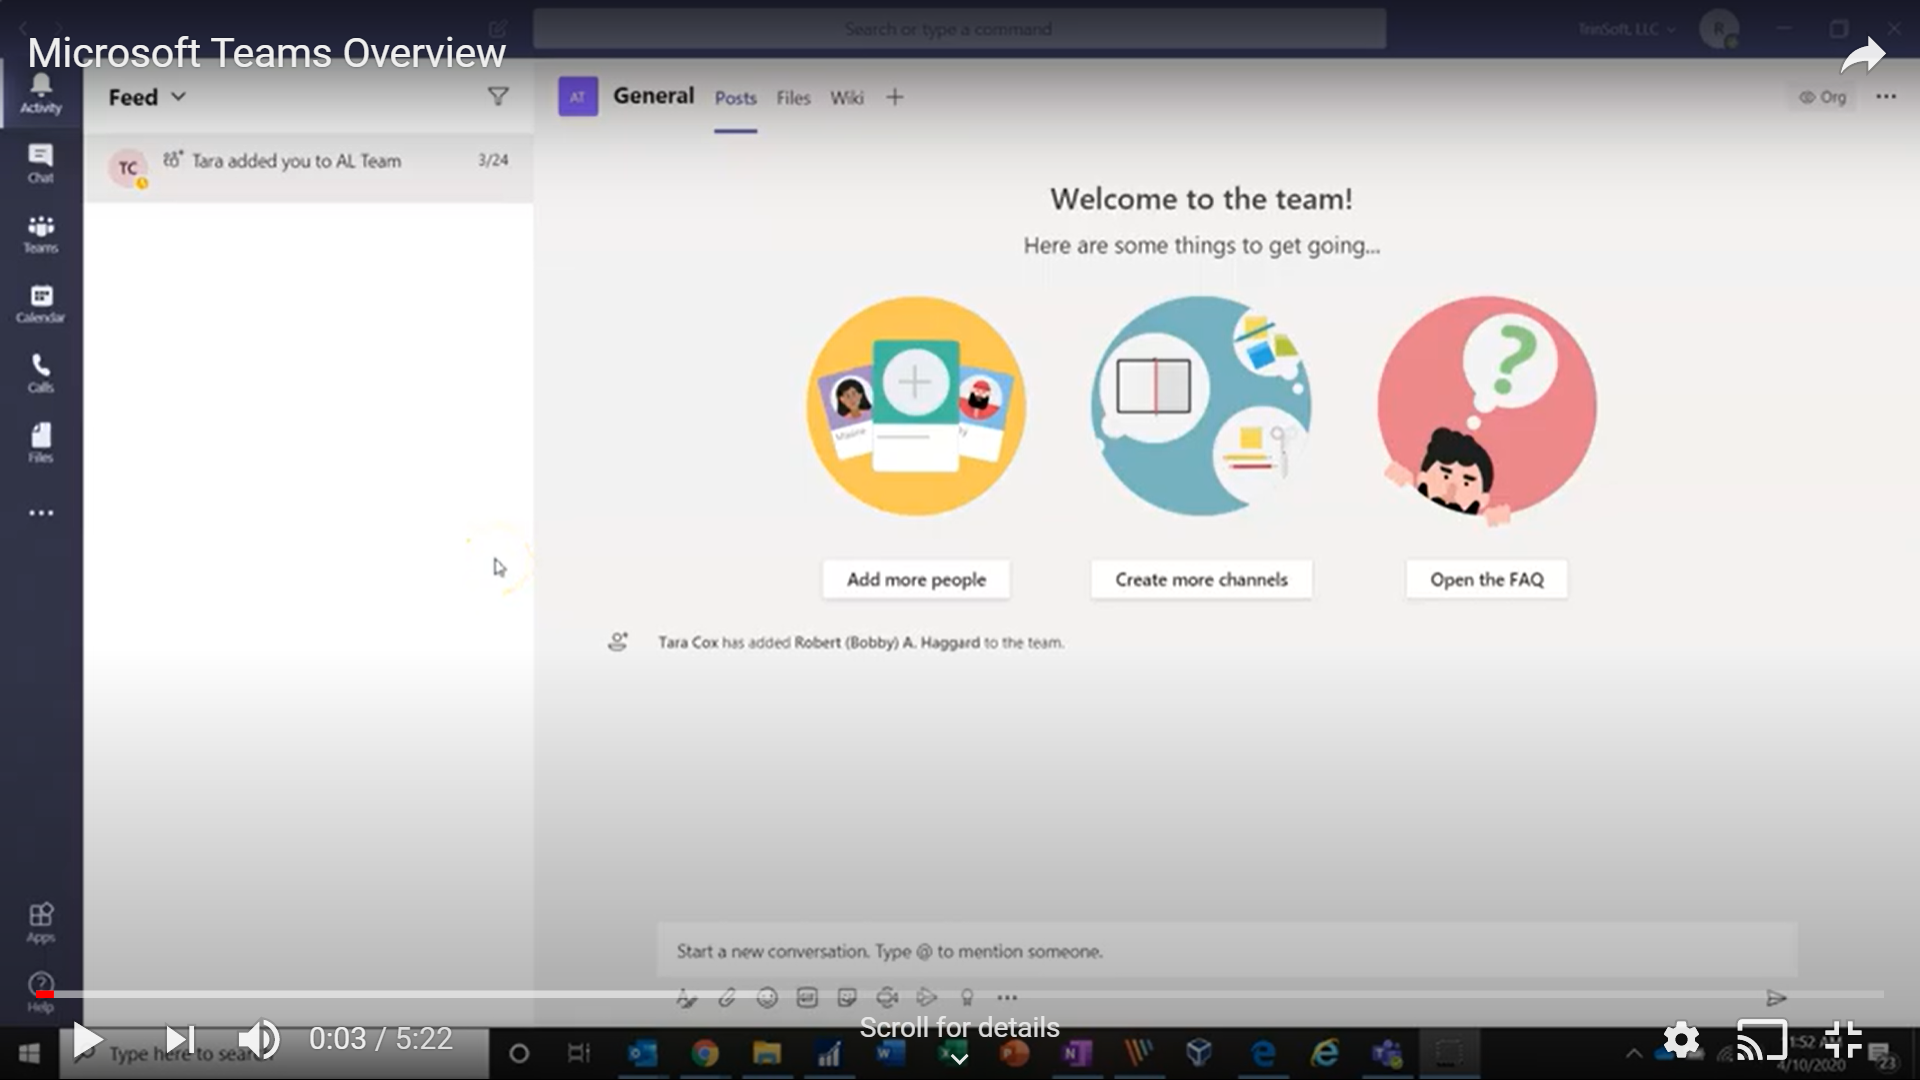 Microsoft Teams Overview Video